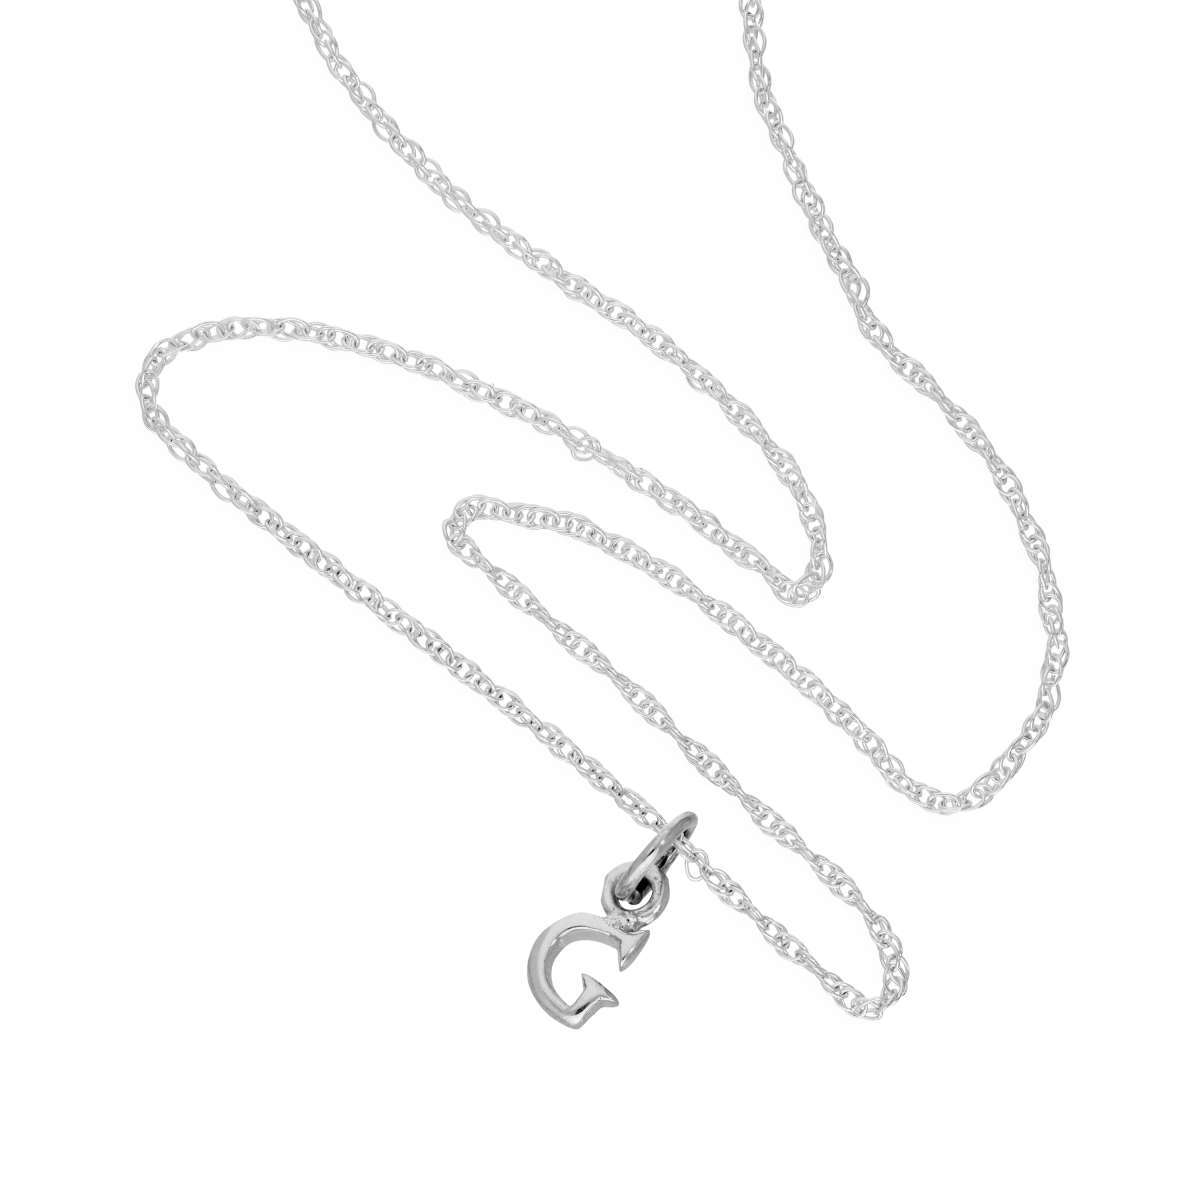 Alterative image for Tiny Sterling Silver Alphabet Letter G Pendant Necklace 14 - 22 Inches